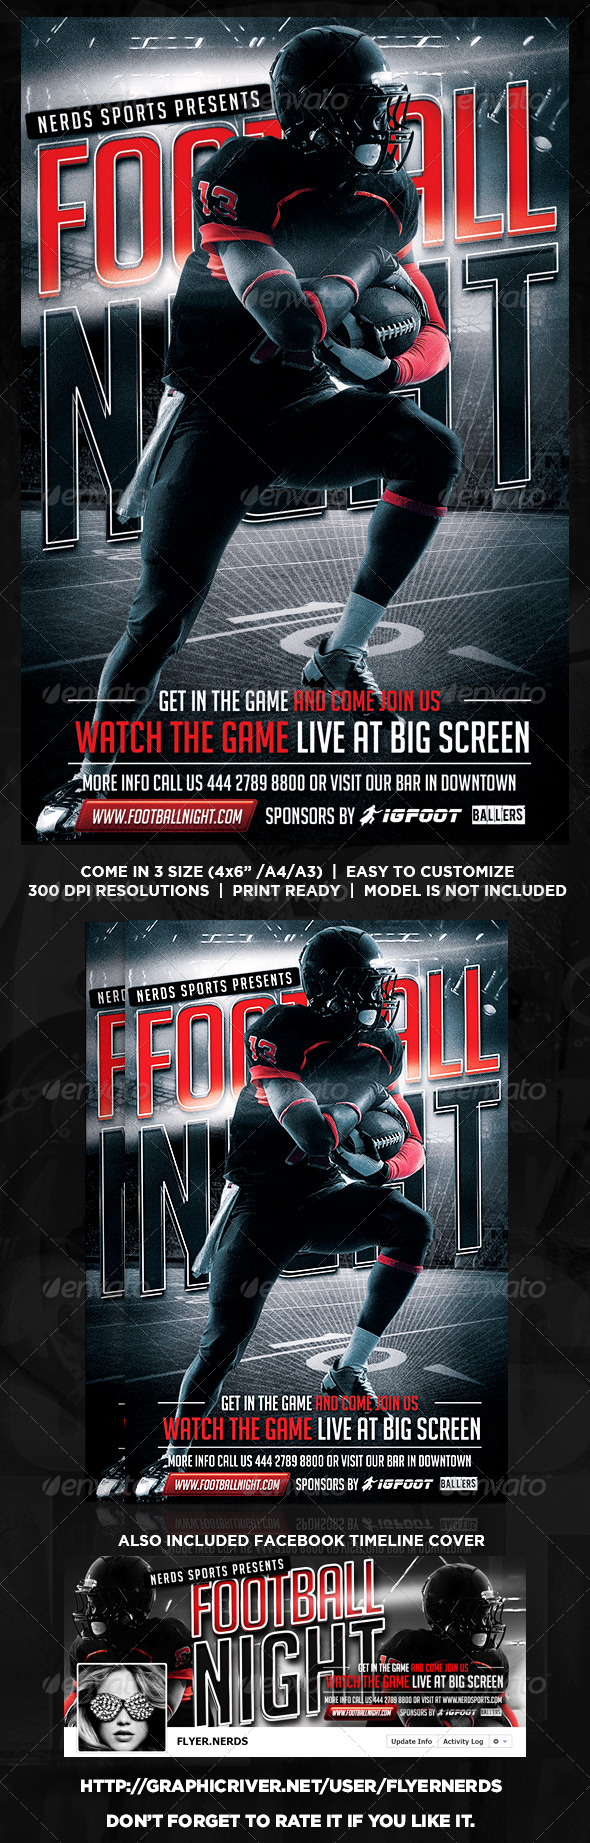 GraphicRiver Football Night Flyer 8778494